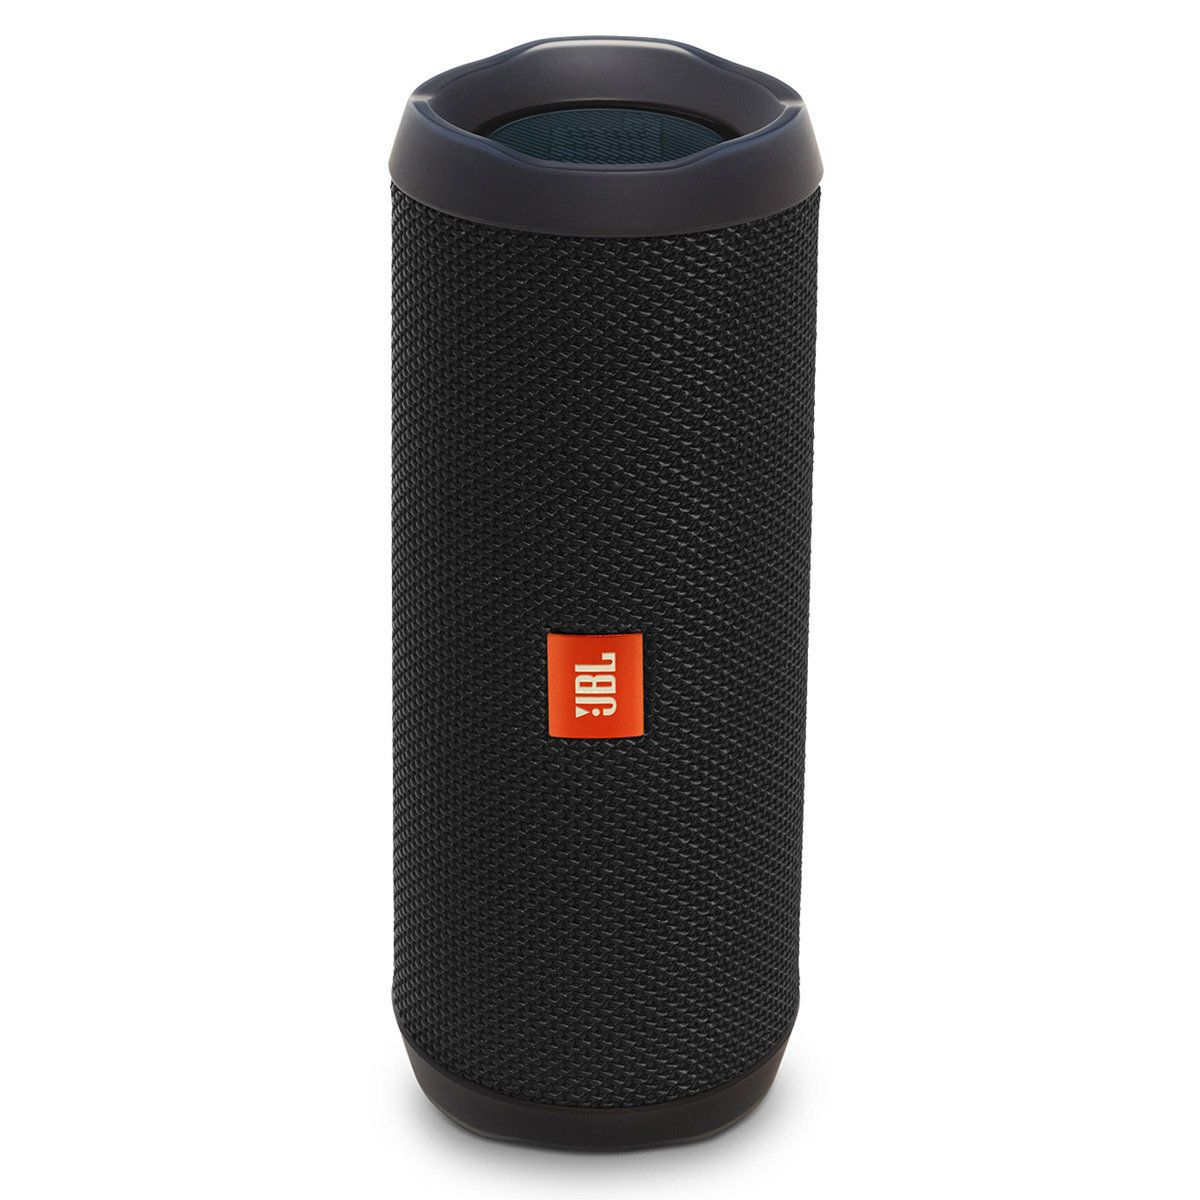 JBL Charge 4: Is it any good? Should you buy it? | What Hi-Fi?